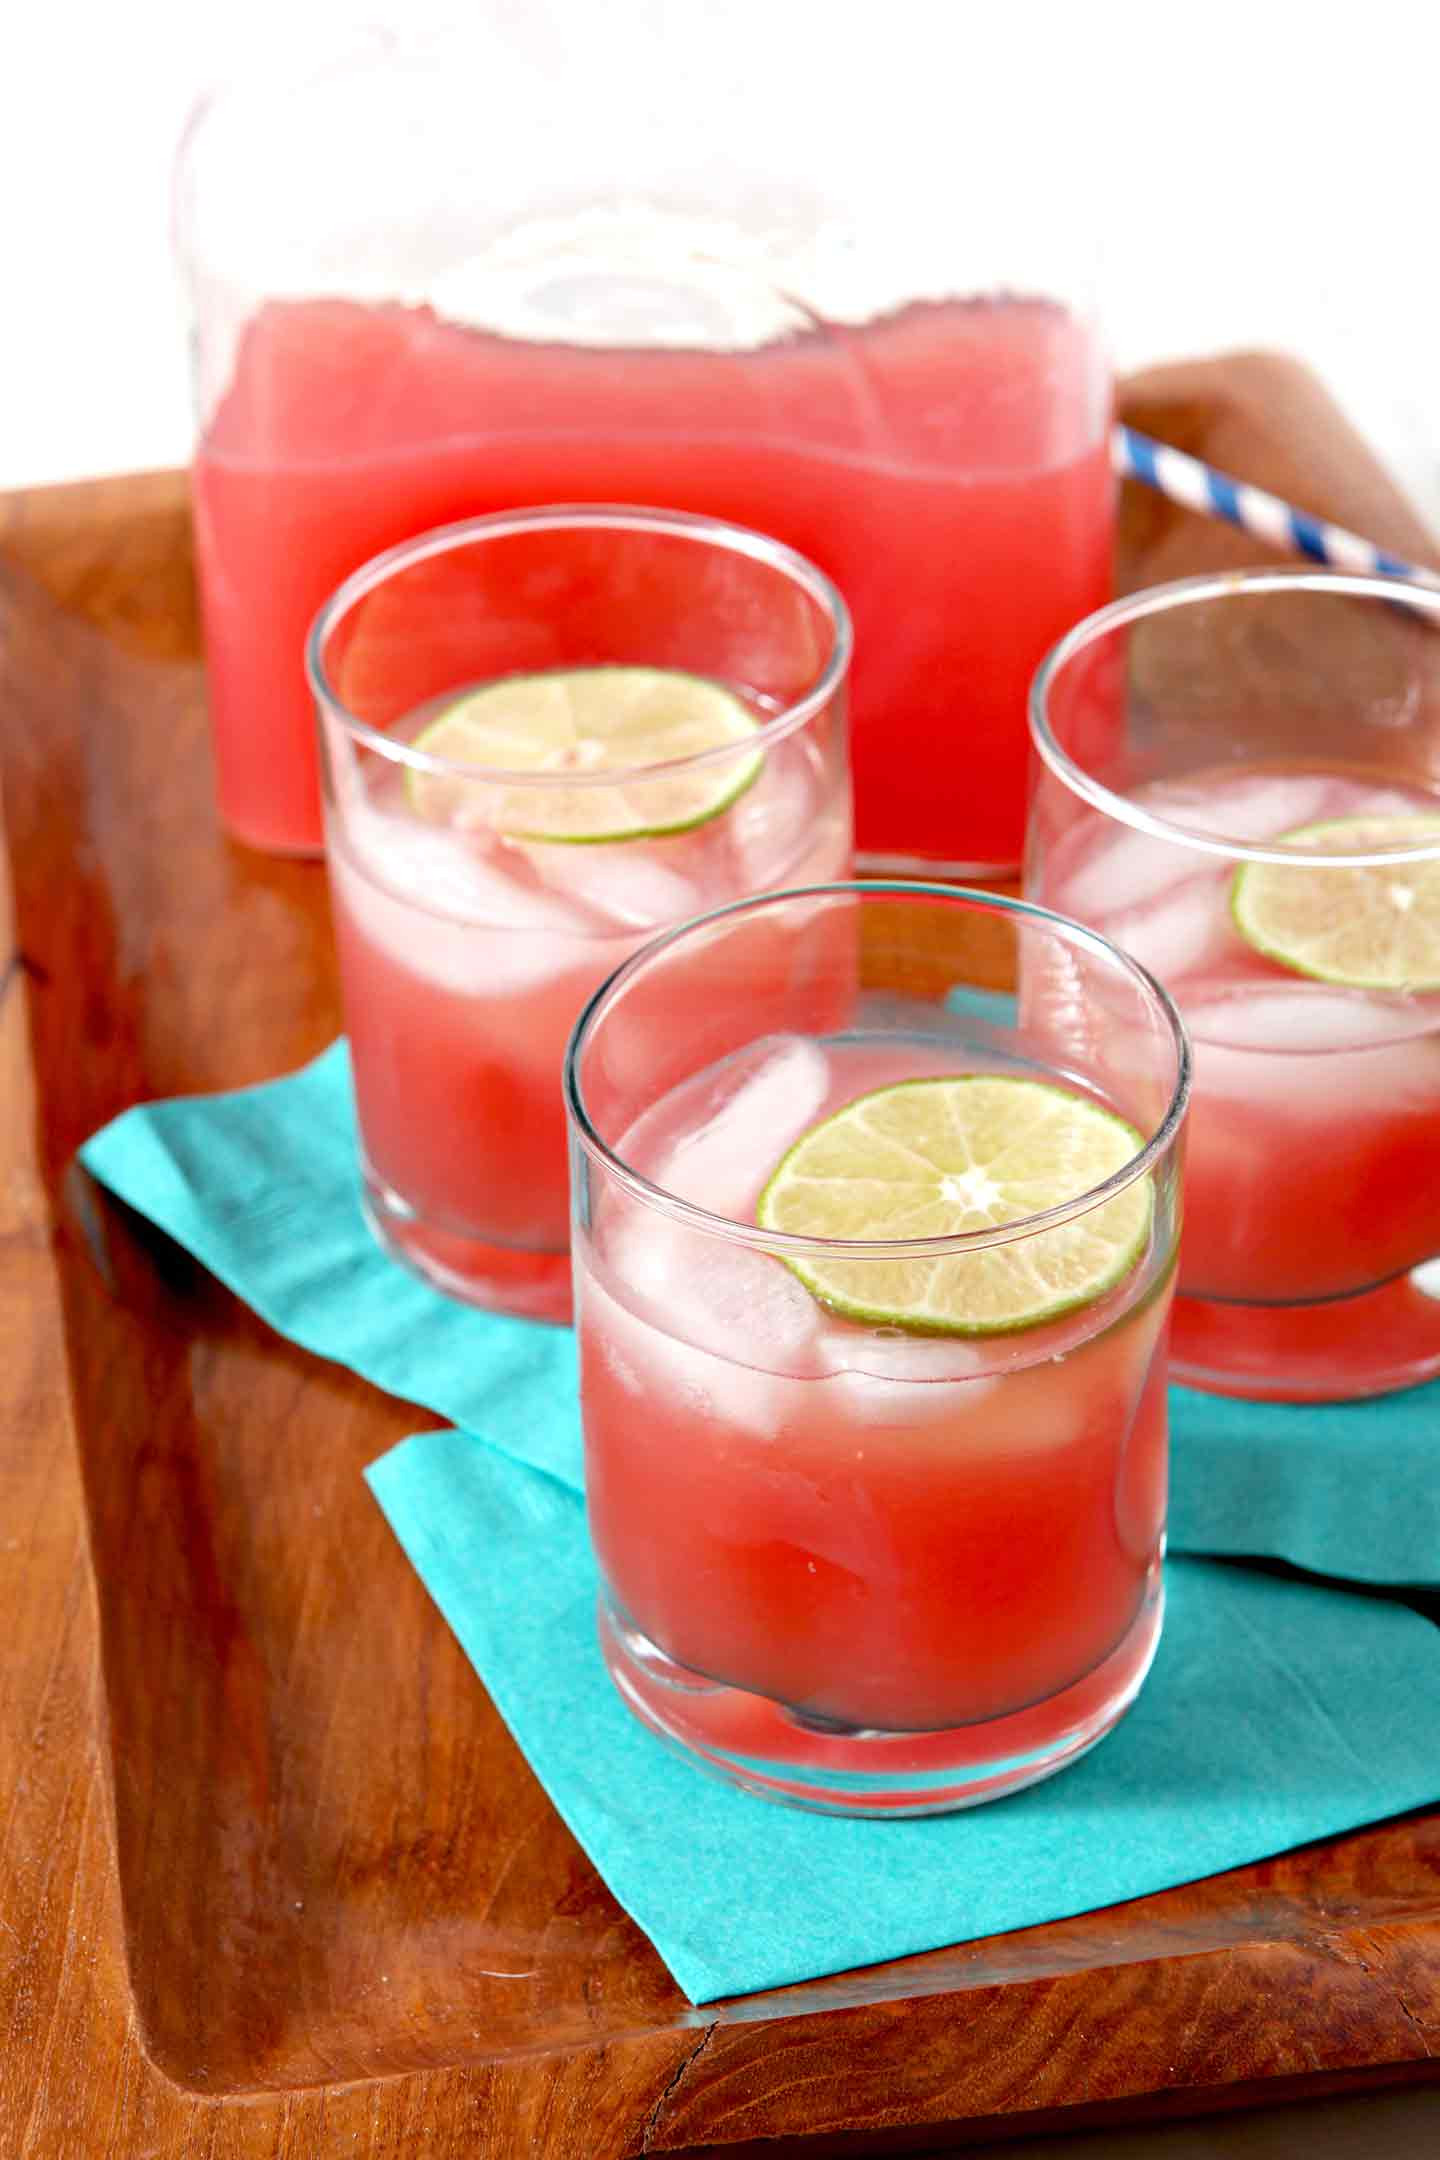 Vodka Watermelon Drinks  Spiked Watermelon Limeade is the BEST summertime pitcher